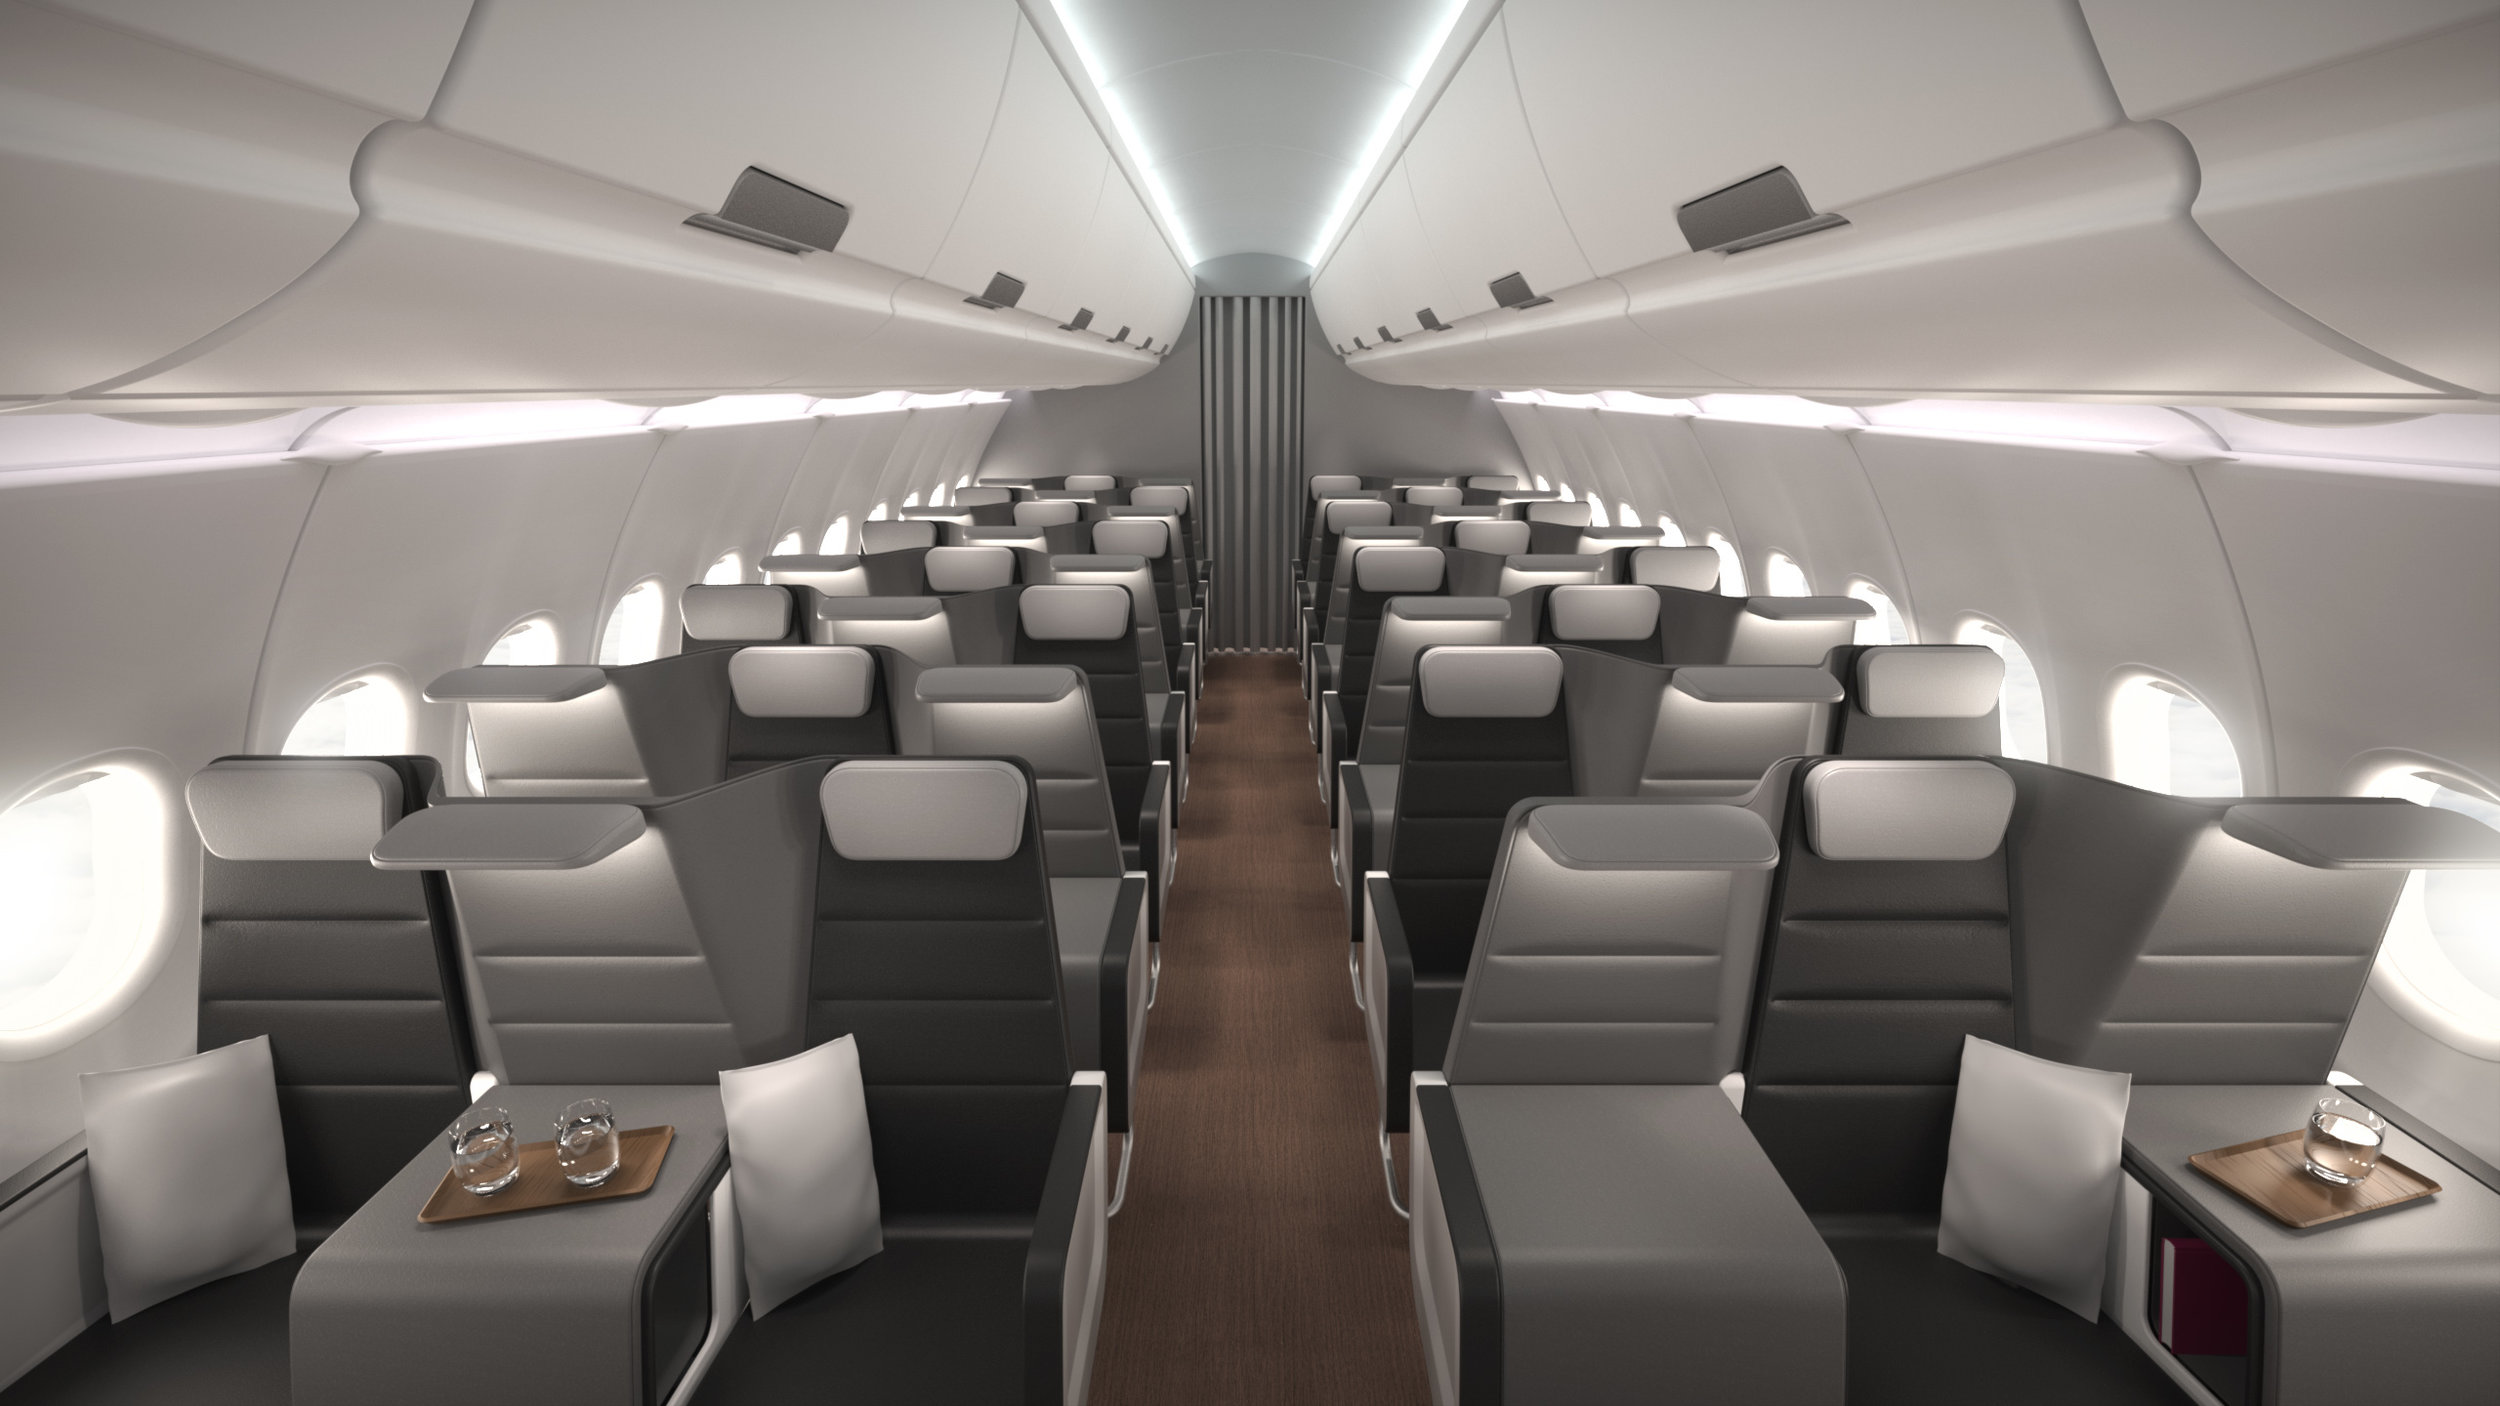 Checkerboard - Our solution to the Euro Business Class problem, Checkerboard allows instant conversion between high-density economy class and business class.